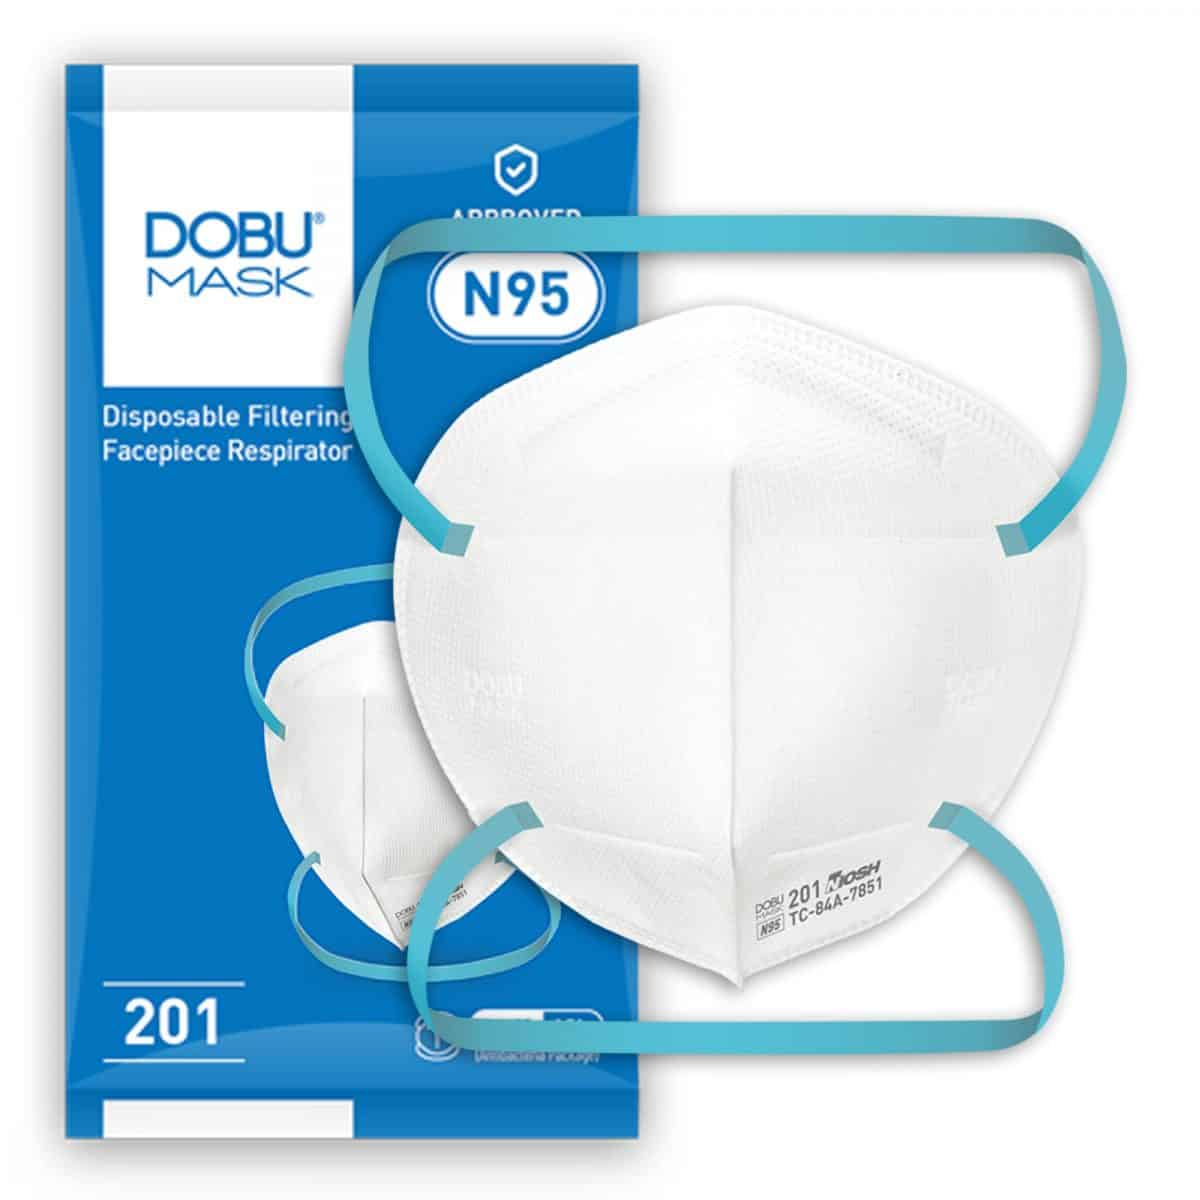 N95 mask for large face